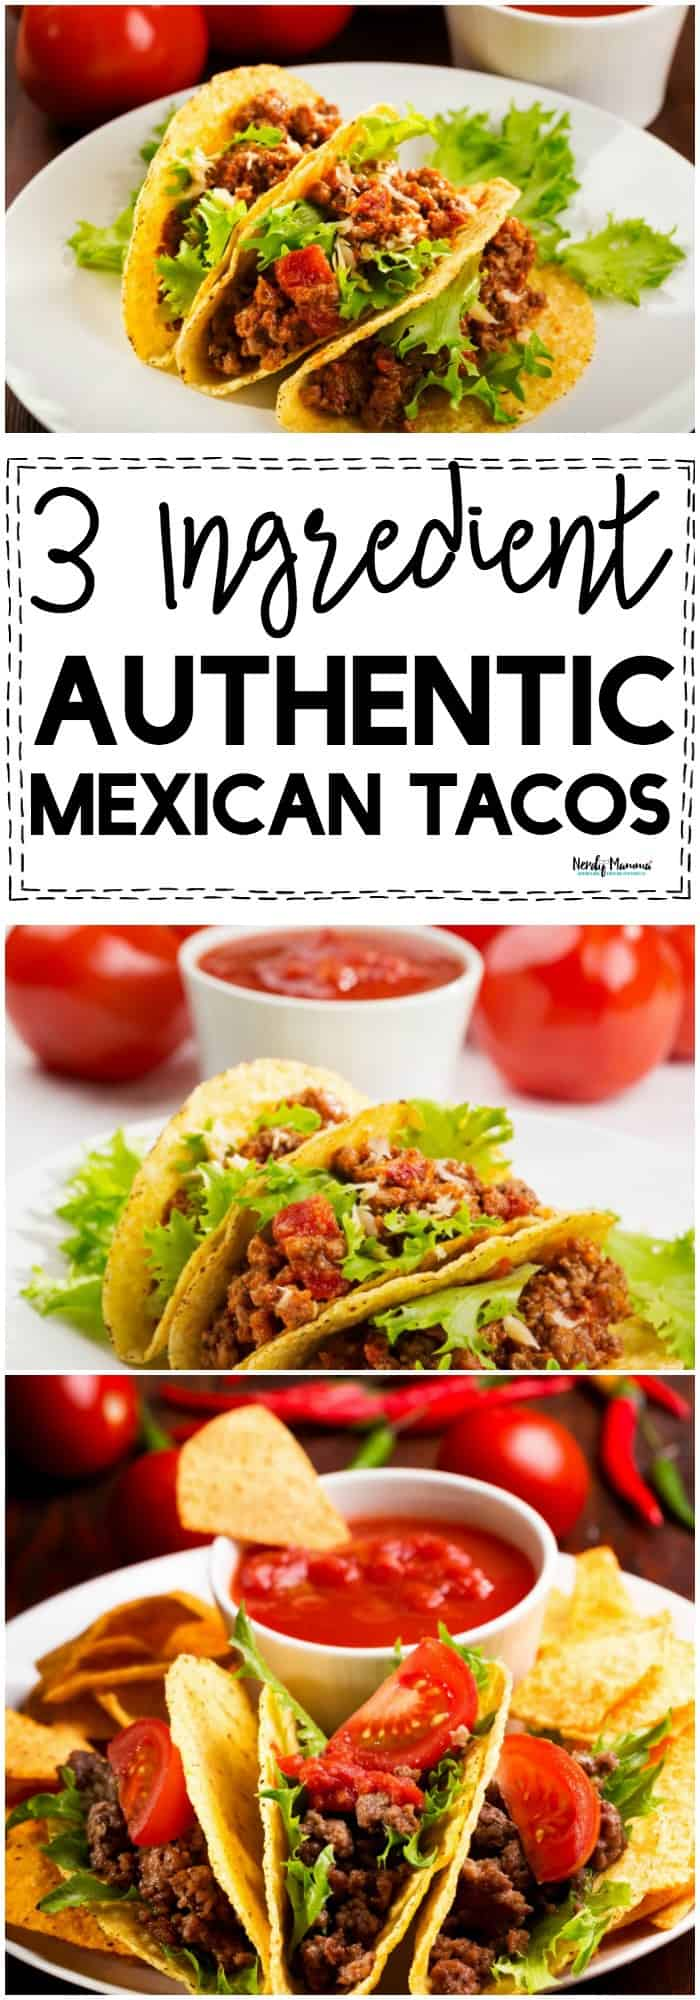 OMG these 3 ingredient authentic Mexican tacos are AMAZEBALLS! So delicious and simple to make!!